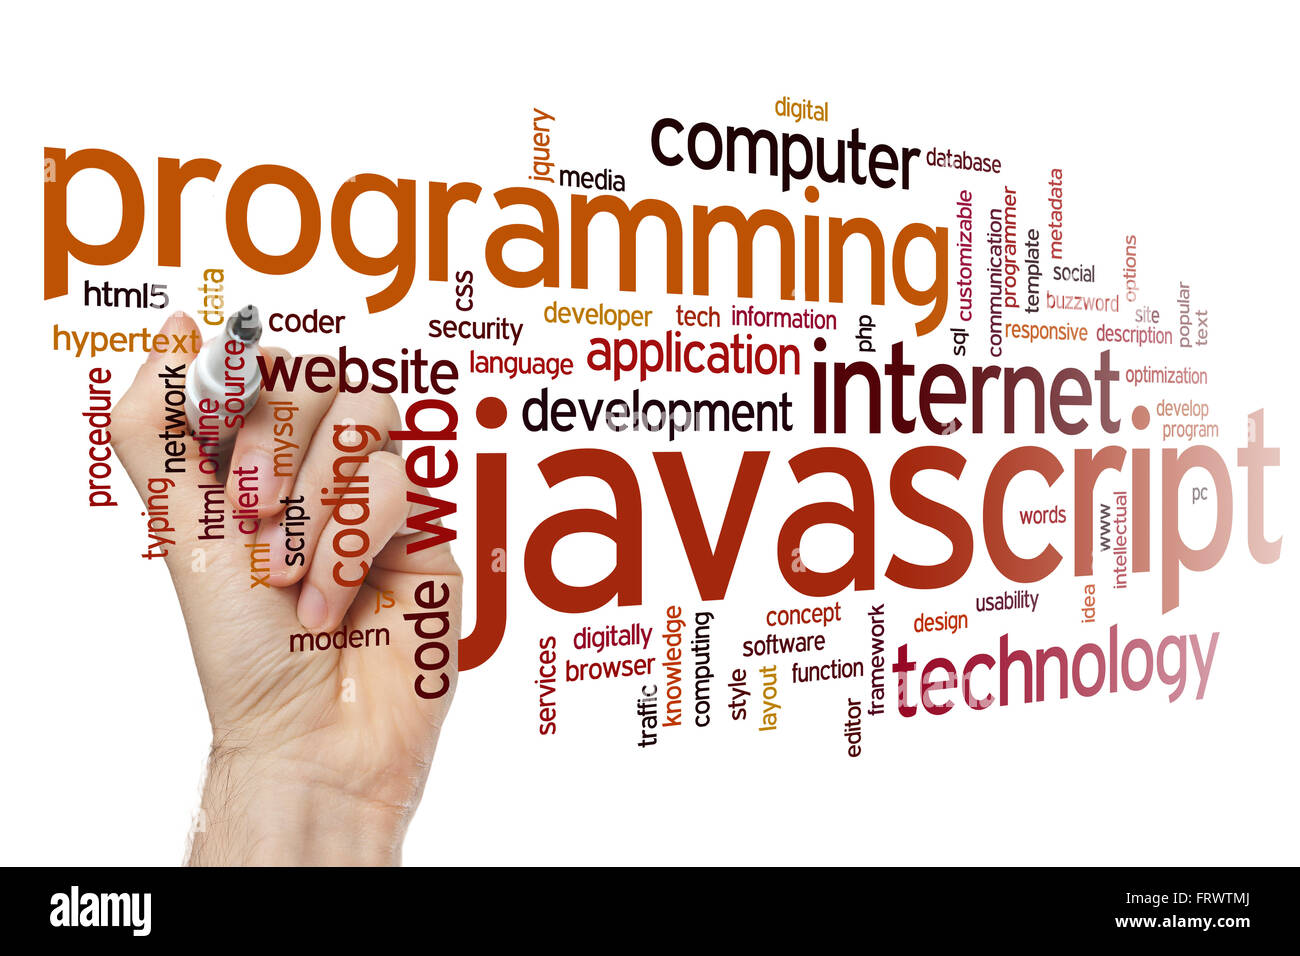 Javascript Cloud Javascript Concept Word Cloud Background Stock Photo 100757122